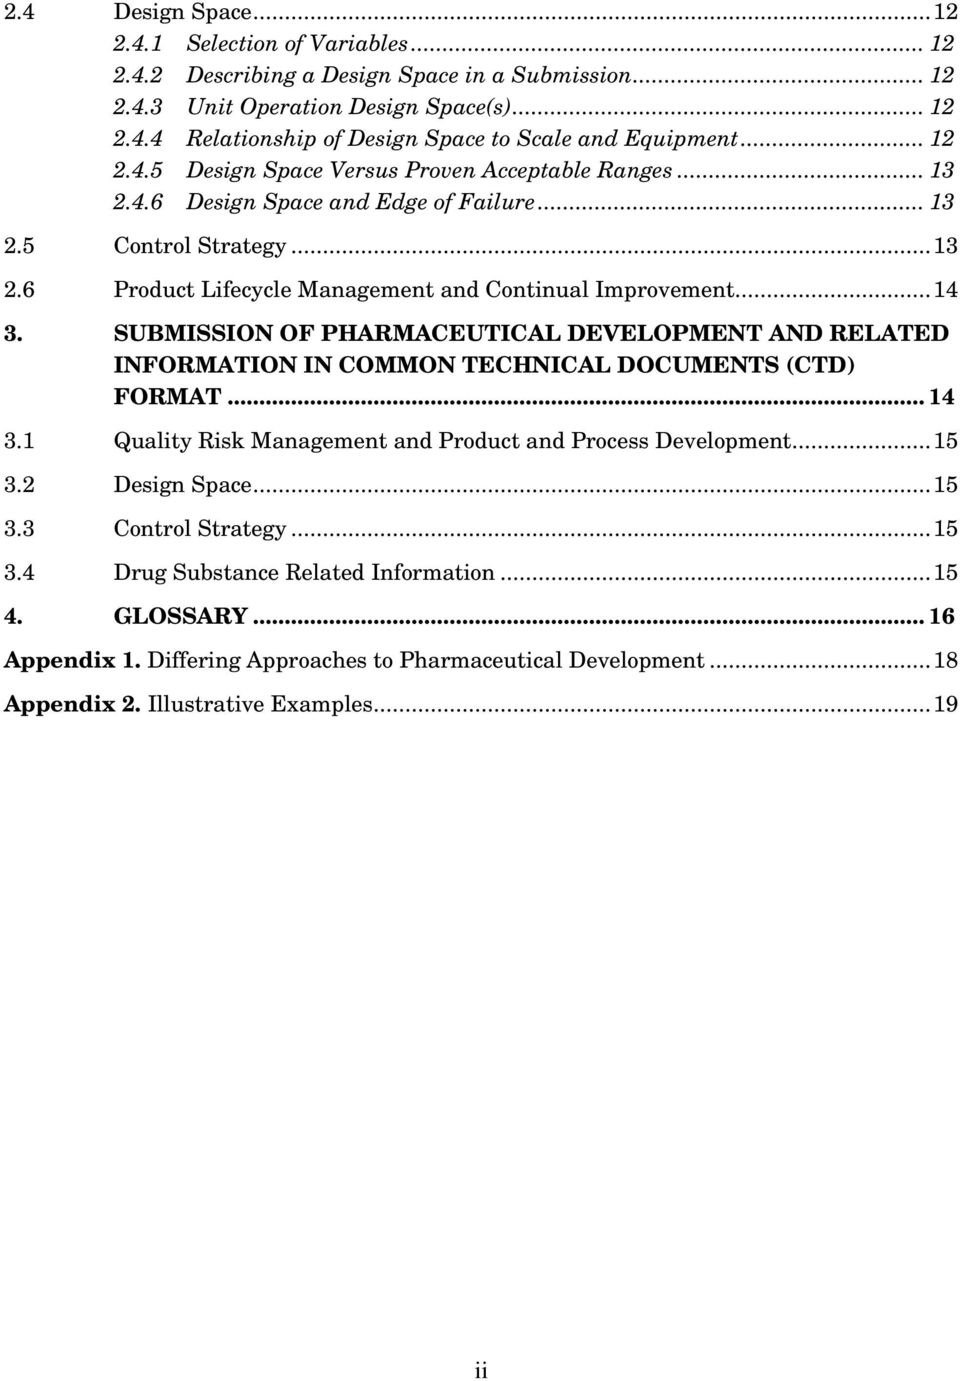 SUBMISSION OF PHARMACEUTICAL DEVELOPMENT AND RELATED INFORMATION IN COMMON TECHNICAL DOCUMENTS (CTD) FORMAT... 14 3.1 Quality Risk Management and Product and Process Development...15 3.2 Design Space.